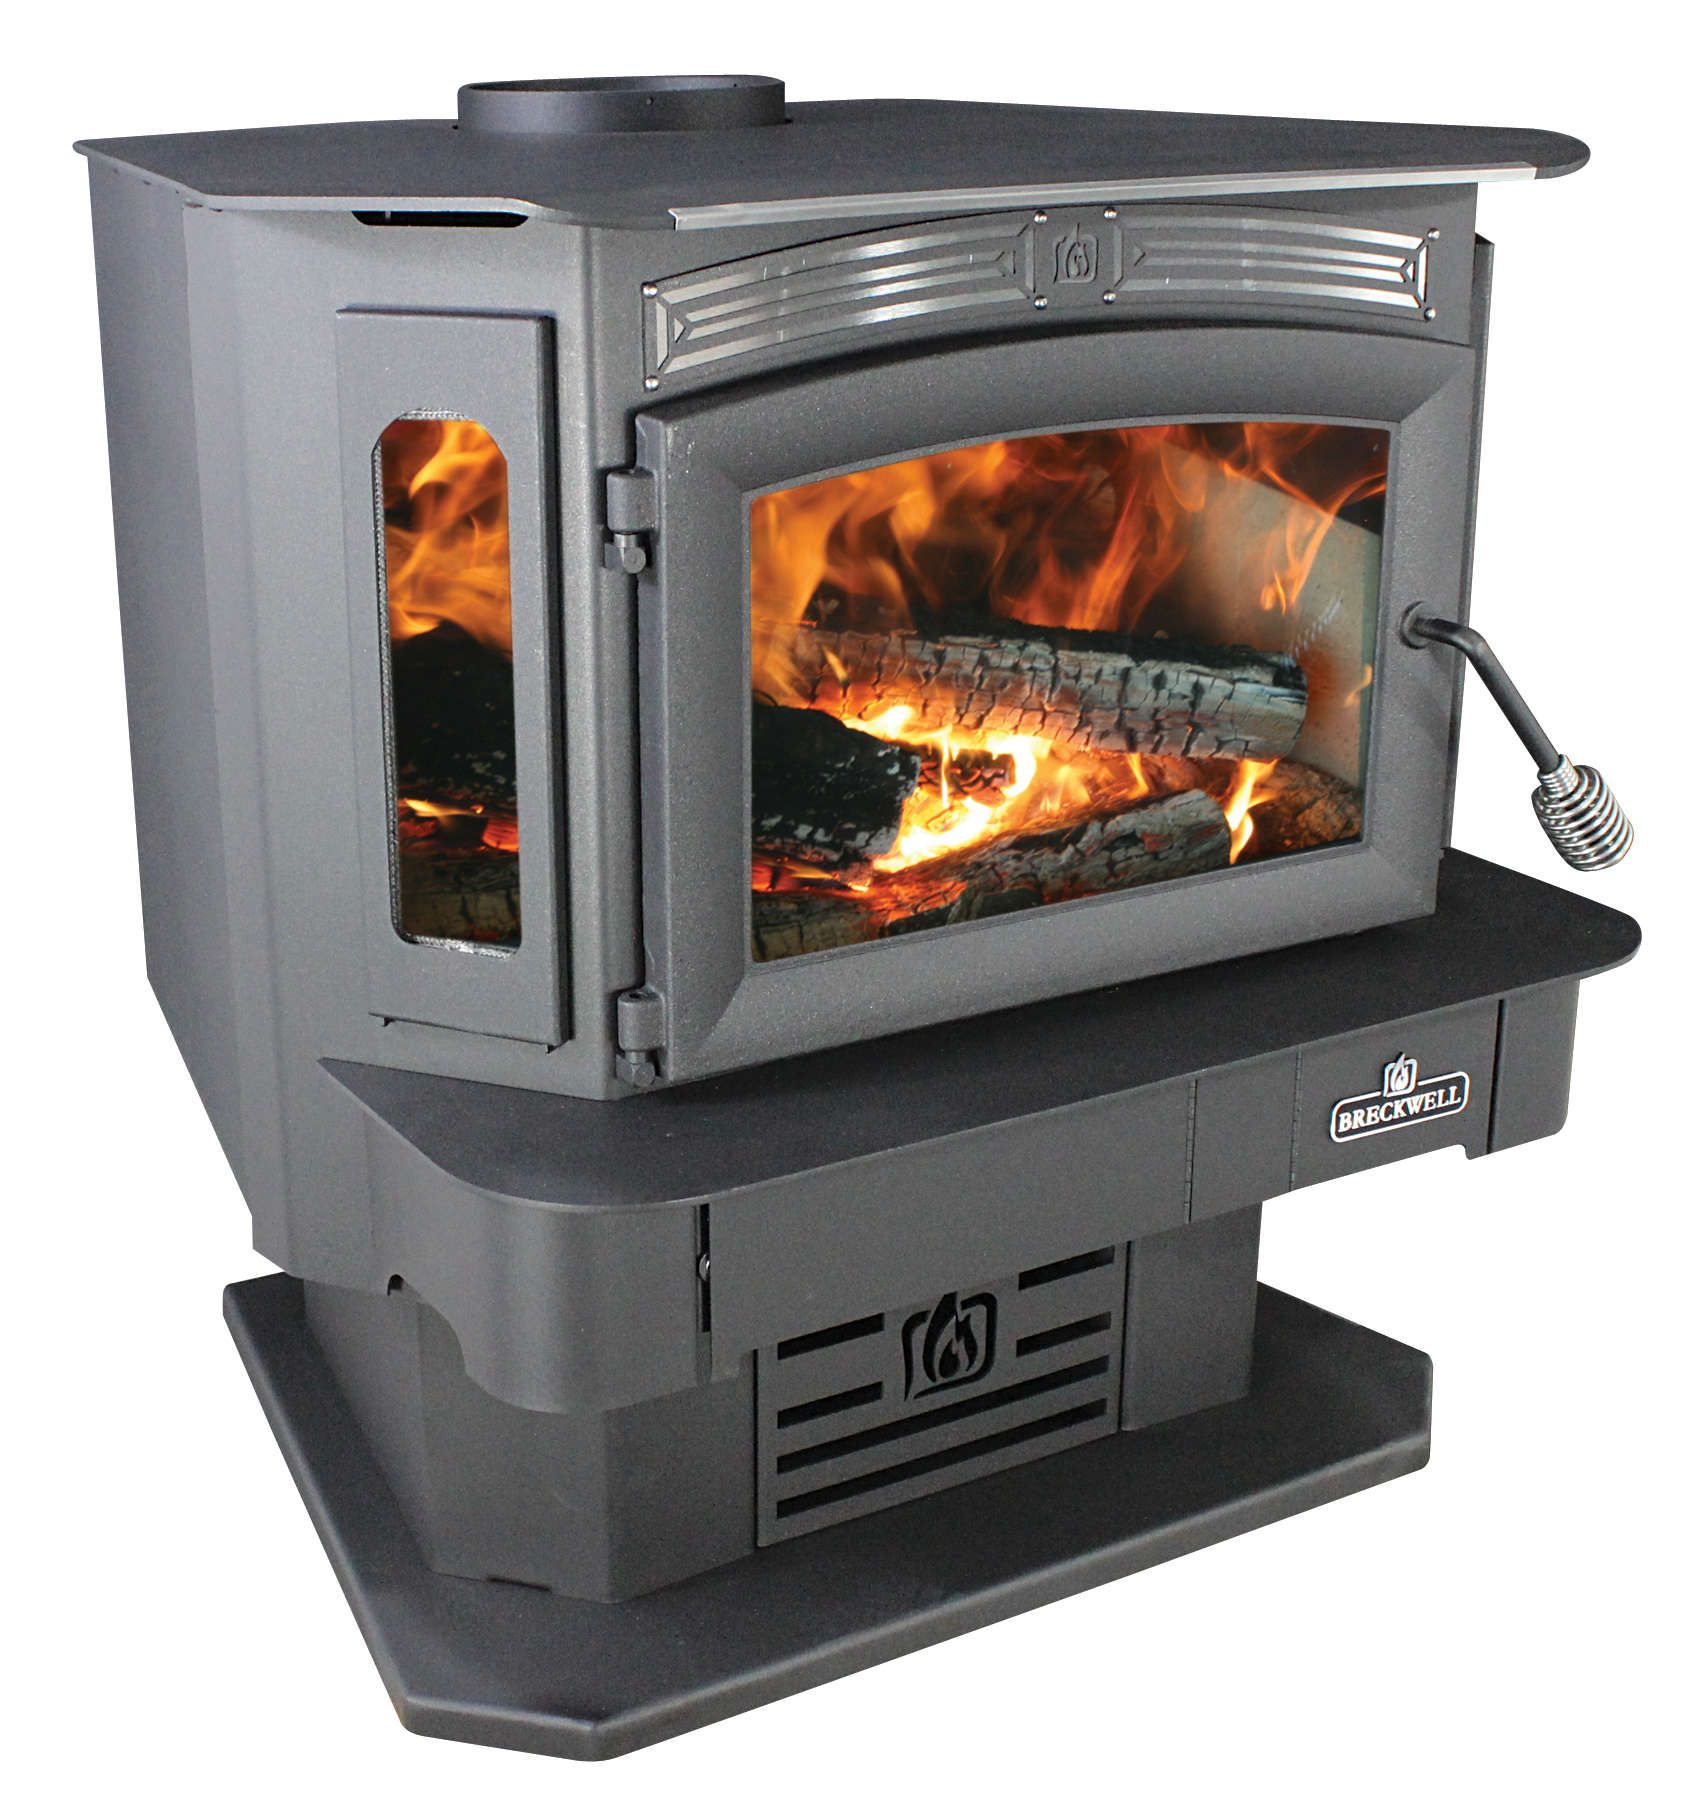 SW940P angle left wood burning stove repair & replacement parts online buck stove clayton wood furnace wiring diagram at creativeand.co